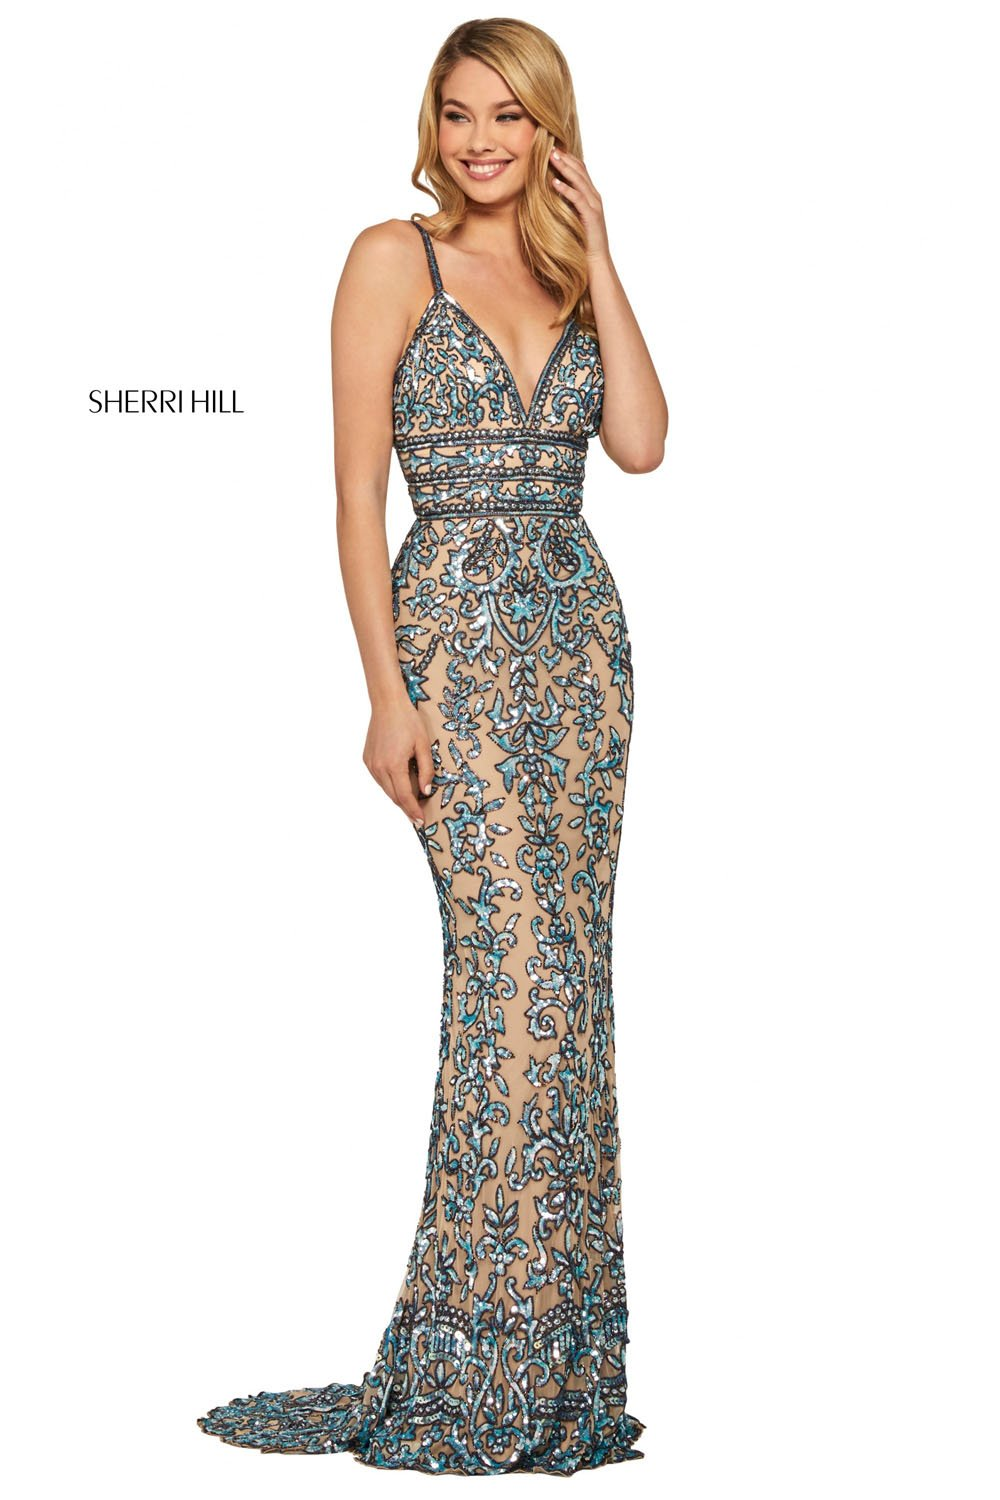 Sherri Hill 53136 prom dress images.  Sherri Hill 53136 is available in these colors: Blush Gold, Ivory Silver, Nude Light Blue, Black Burgundy, Nude Gold, Nude Aqua, Yellow, Periwinkle Pink, Burgundy Blush.